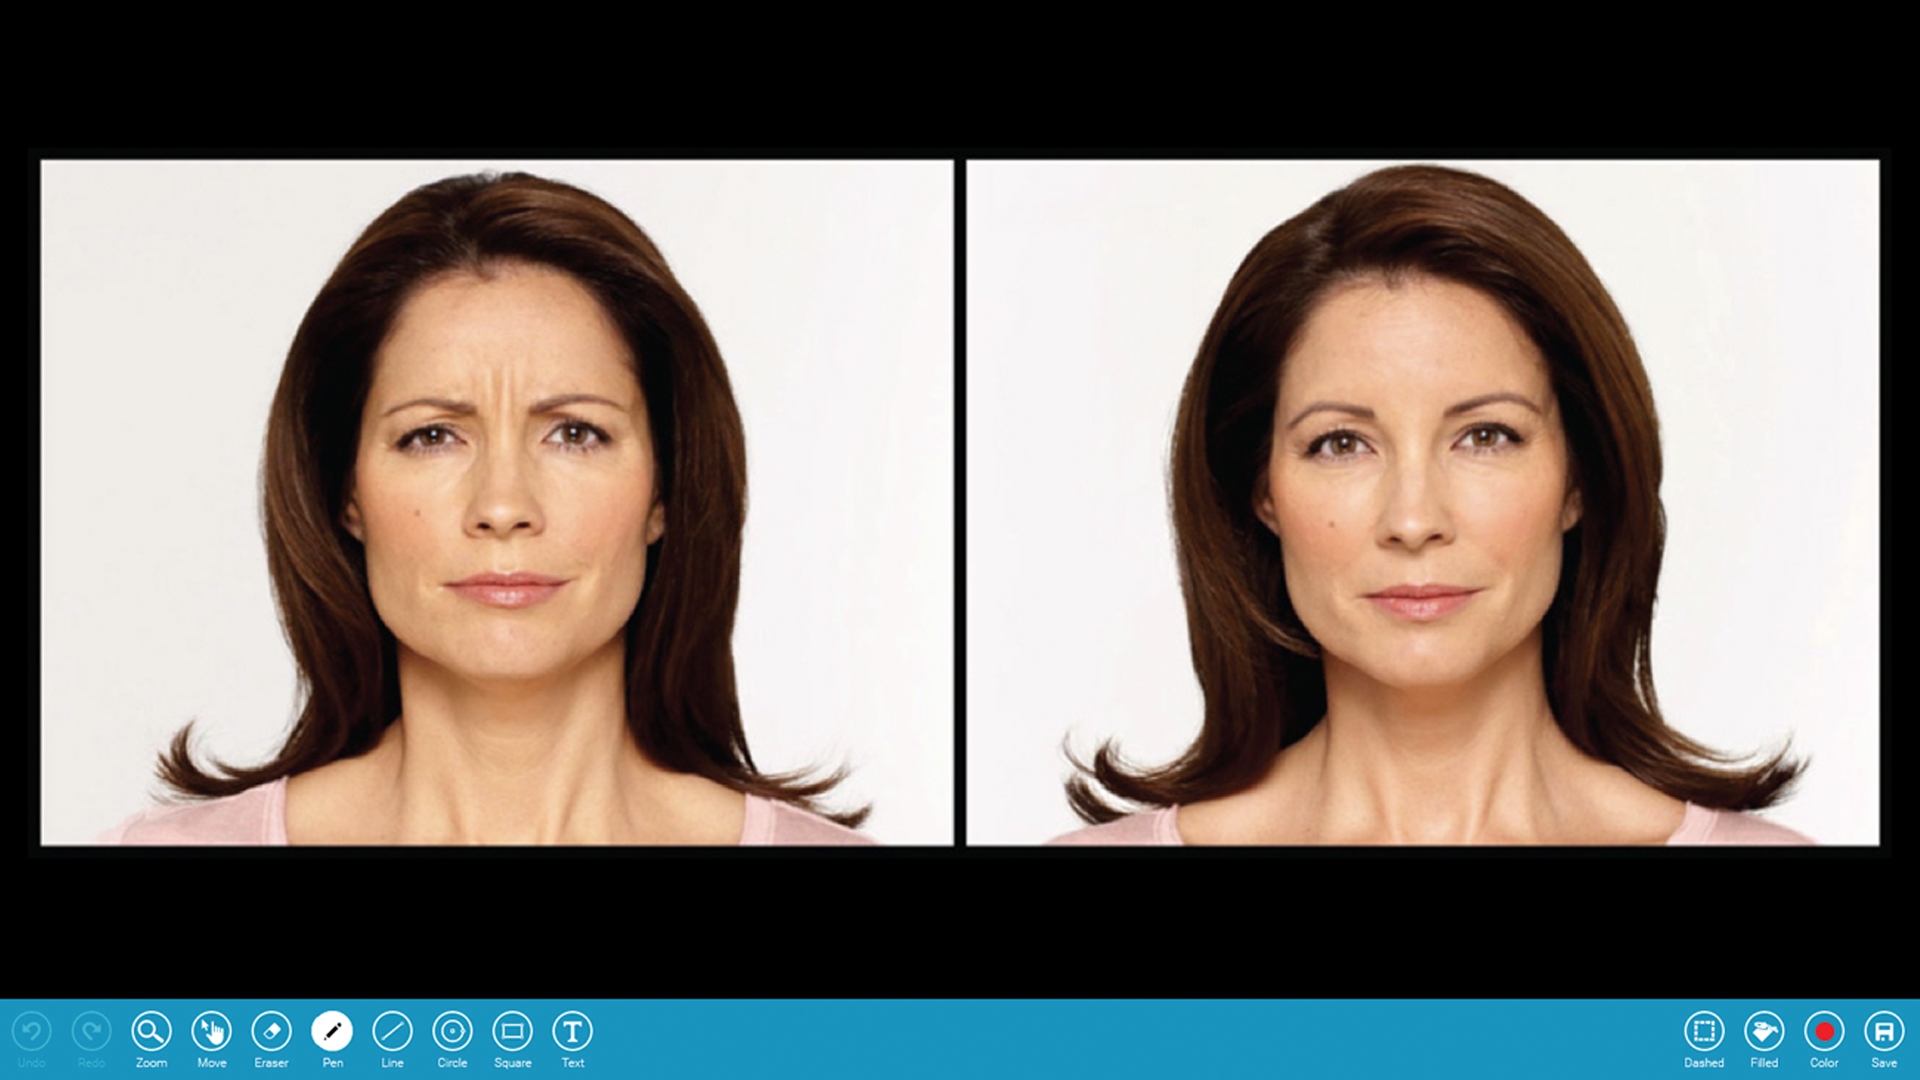 Before & After Galleries - Doctors can easily transform their Before and After Galleries into a digital format to discuss with their patients. Doctors can communicate possible outcomes and illustrate how they achieved desired results.